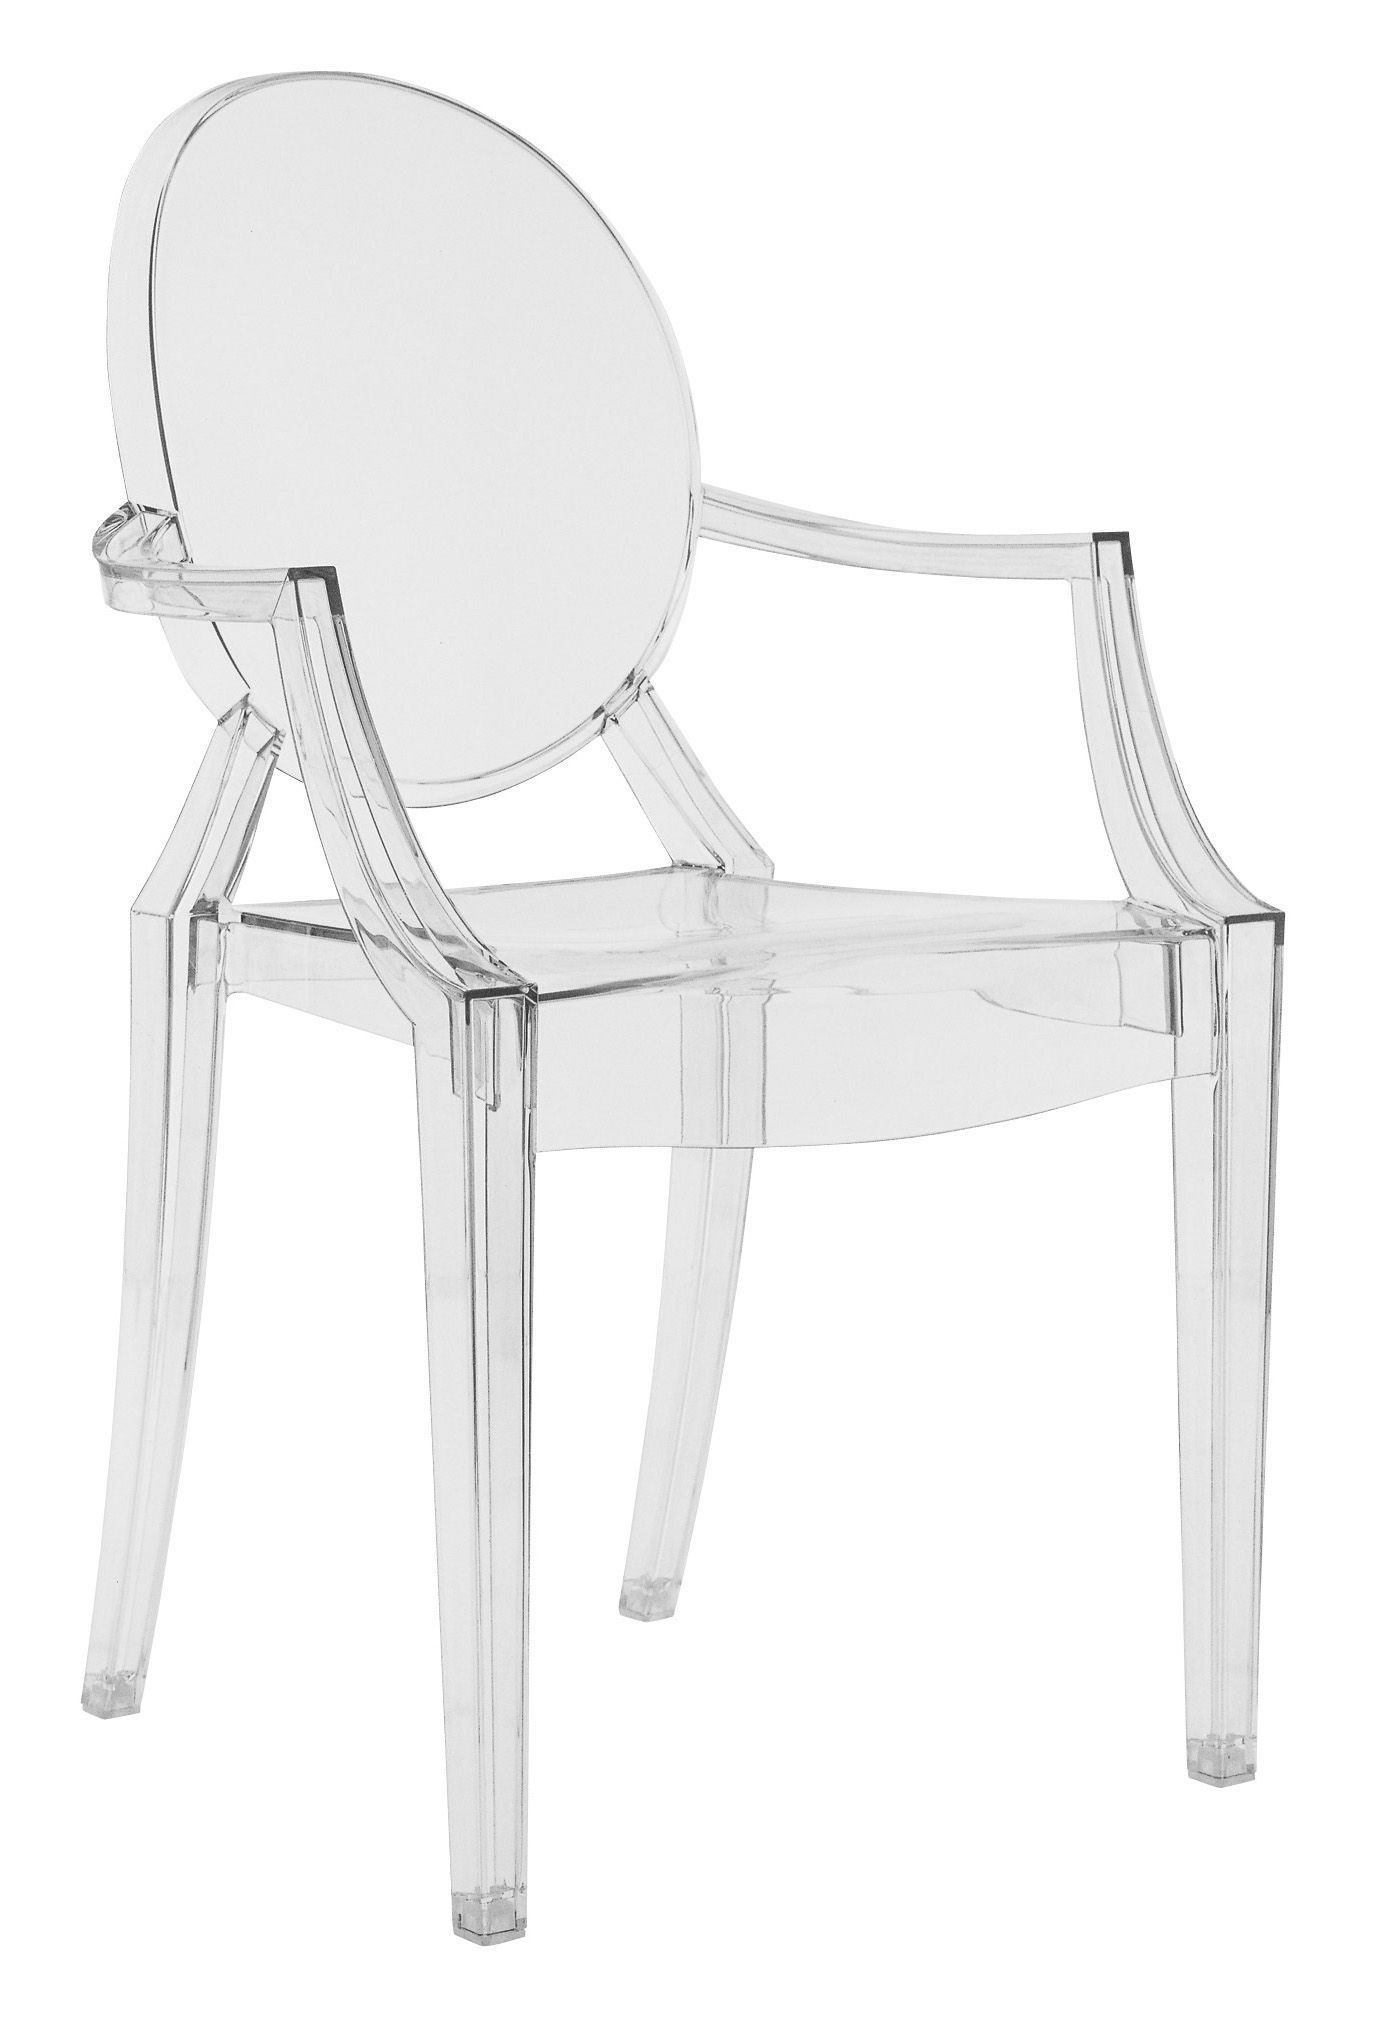 Amy C. Dondoli Sessel Fauteuil Empilable Louis Ghost Transparent Polycarbonate